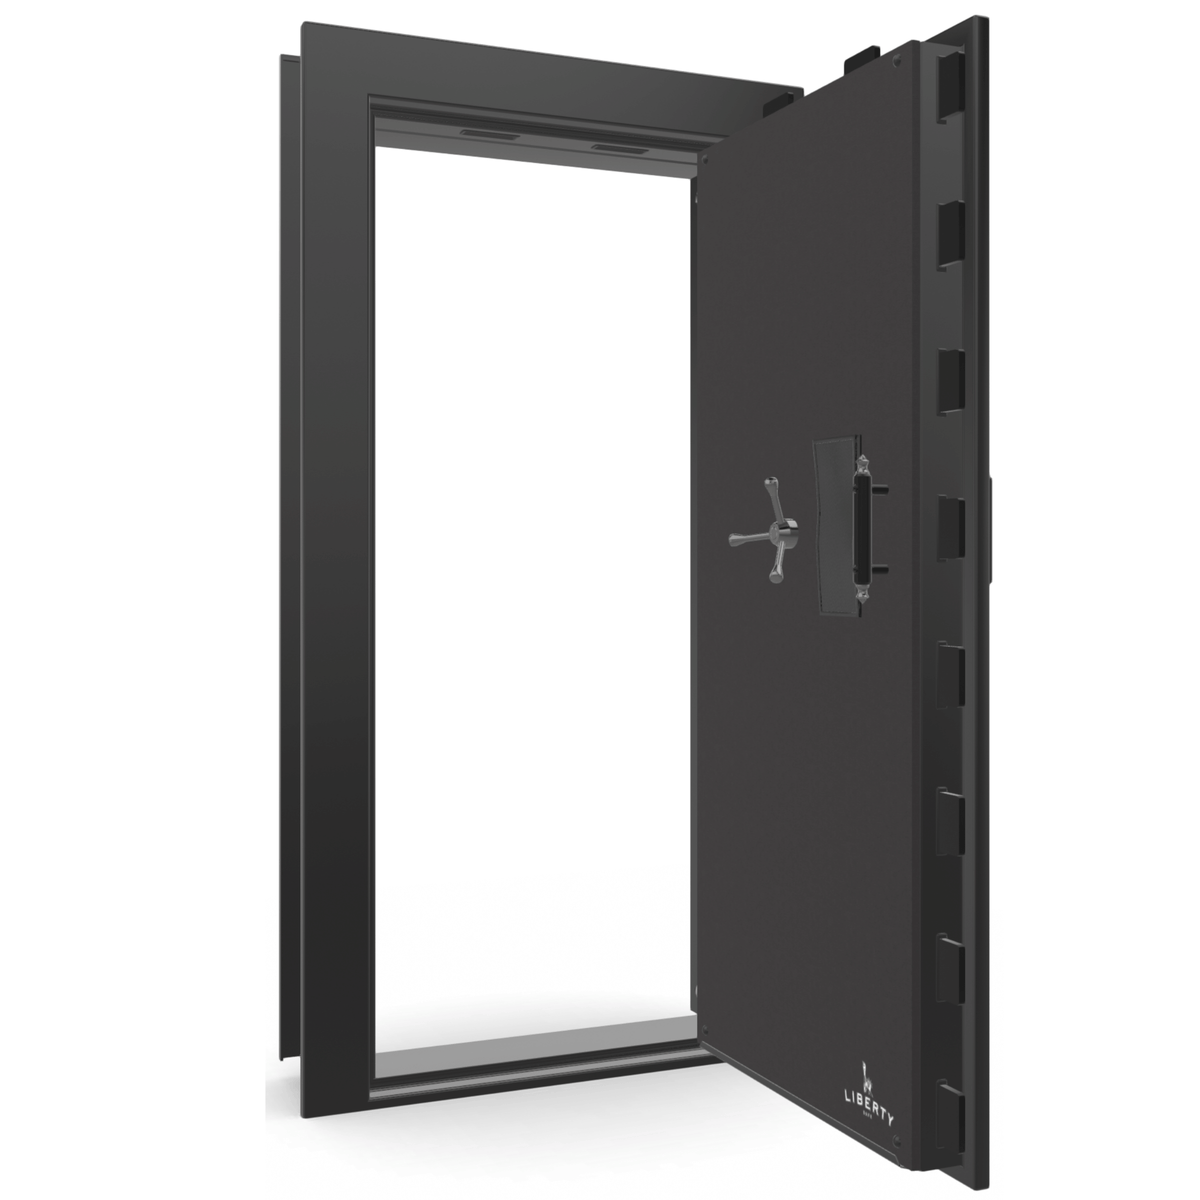 "Vault Door Right Outswing | Black Gloss | Black Mechanical Lock | 81-85""(H) x 27-42""(W) x 7-10""(D)"